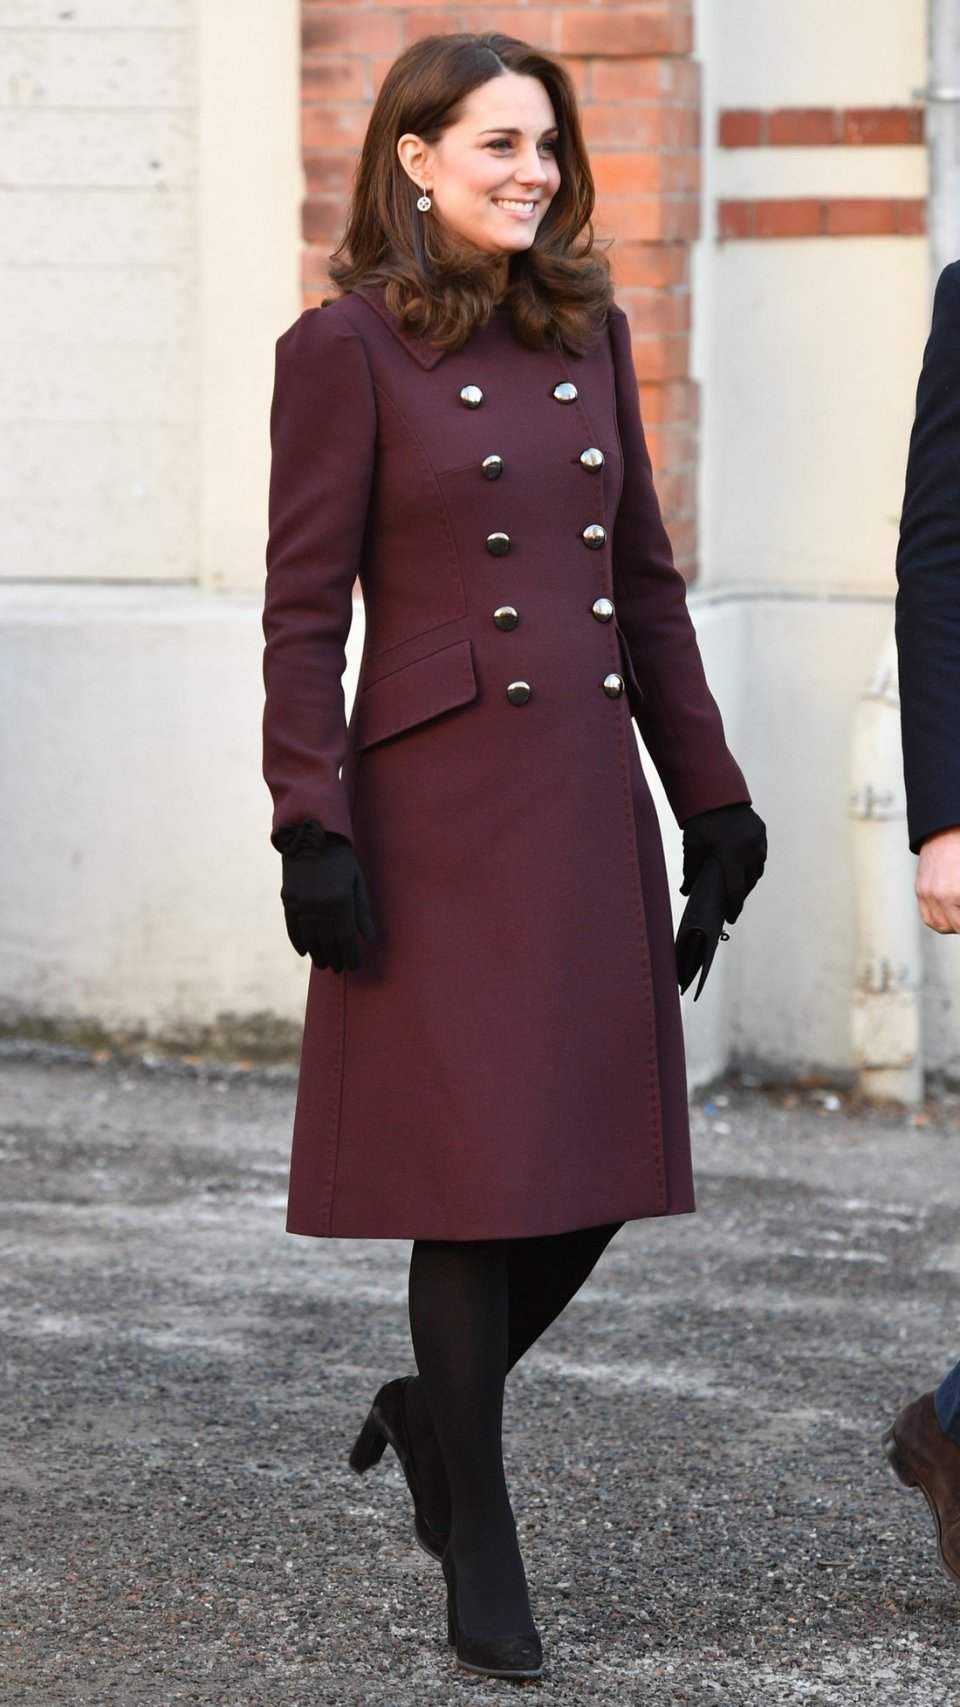 Prince William and Catherine Duchess of Cambridge visit to Norway - 02 Feb 2018